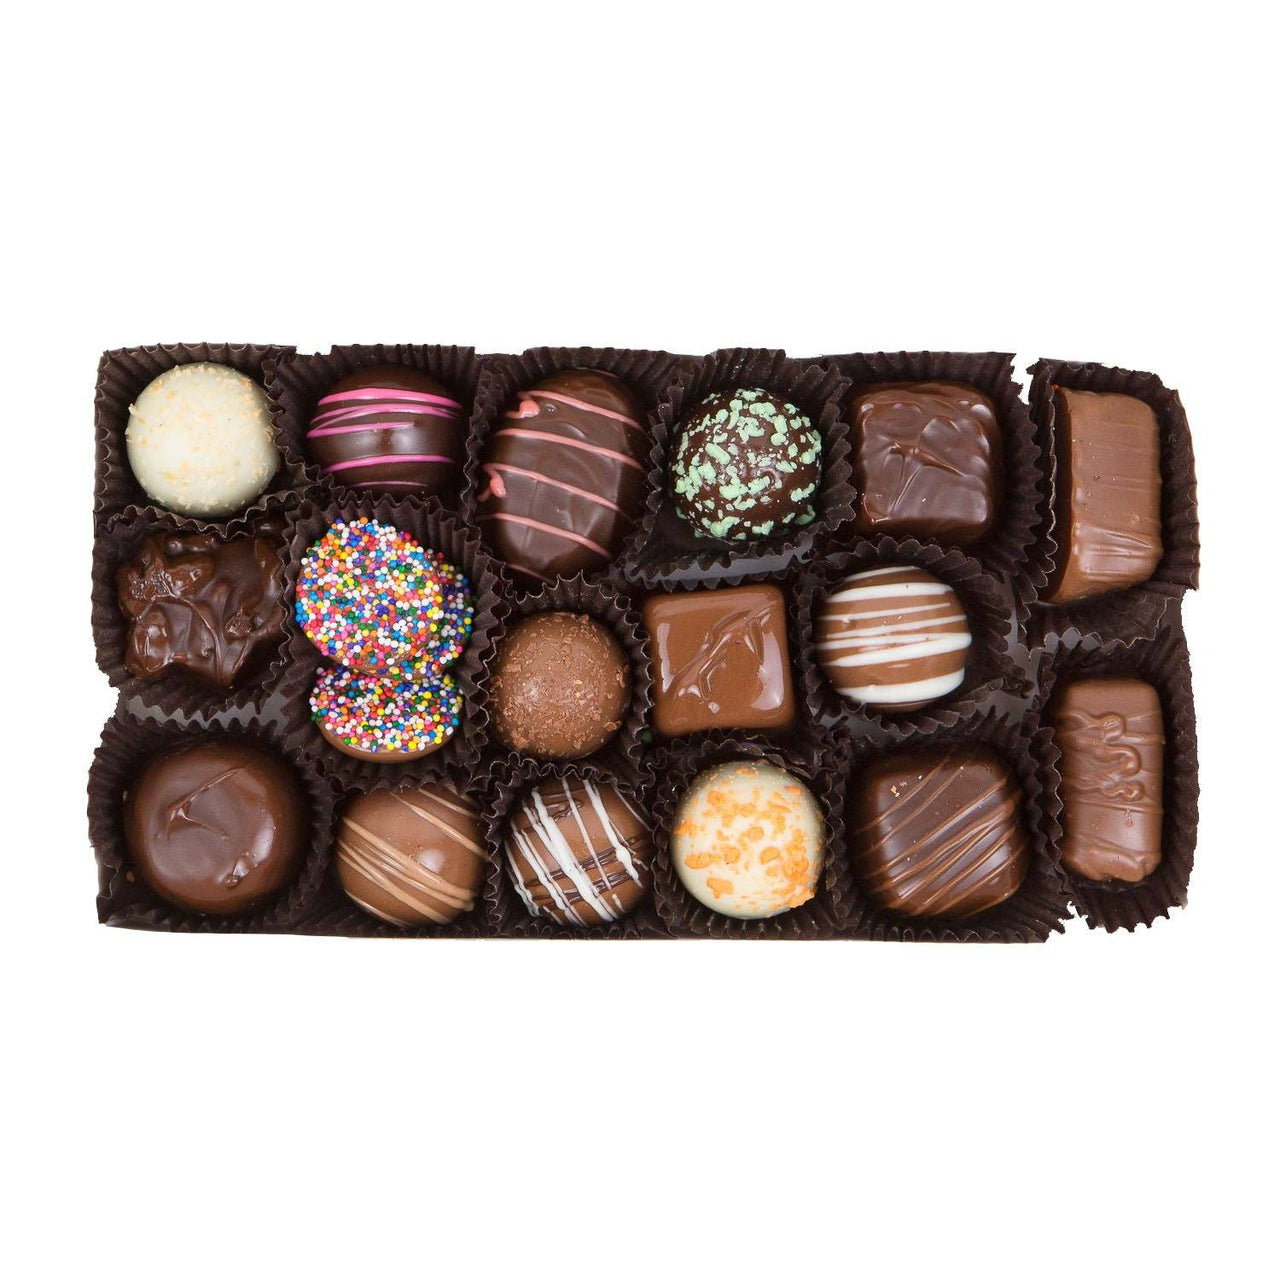 Gifts for College Students - Assorted Chocolate Gift Box - Jackie's Chocolate